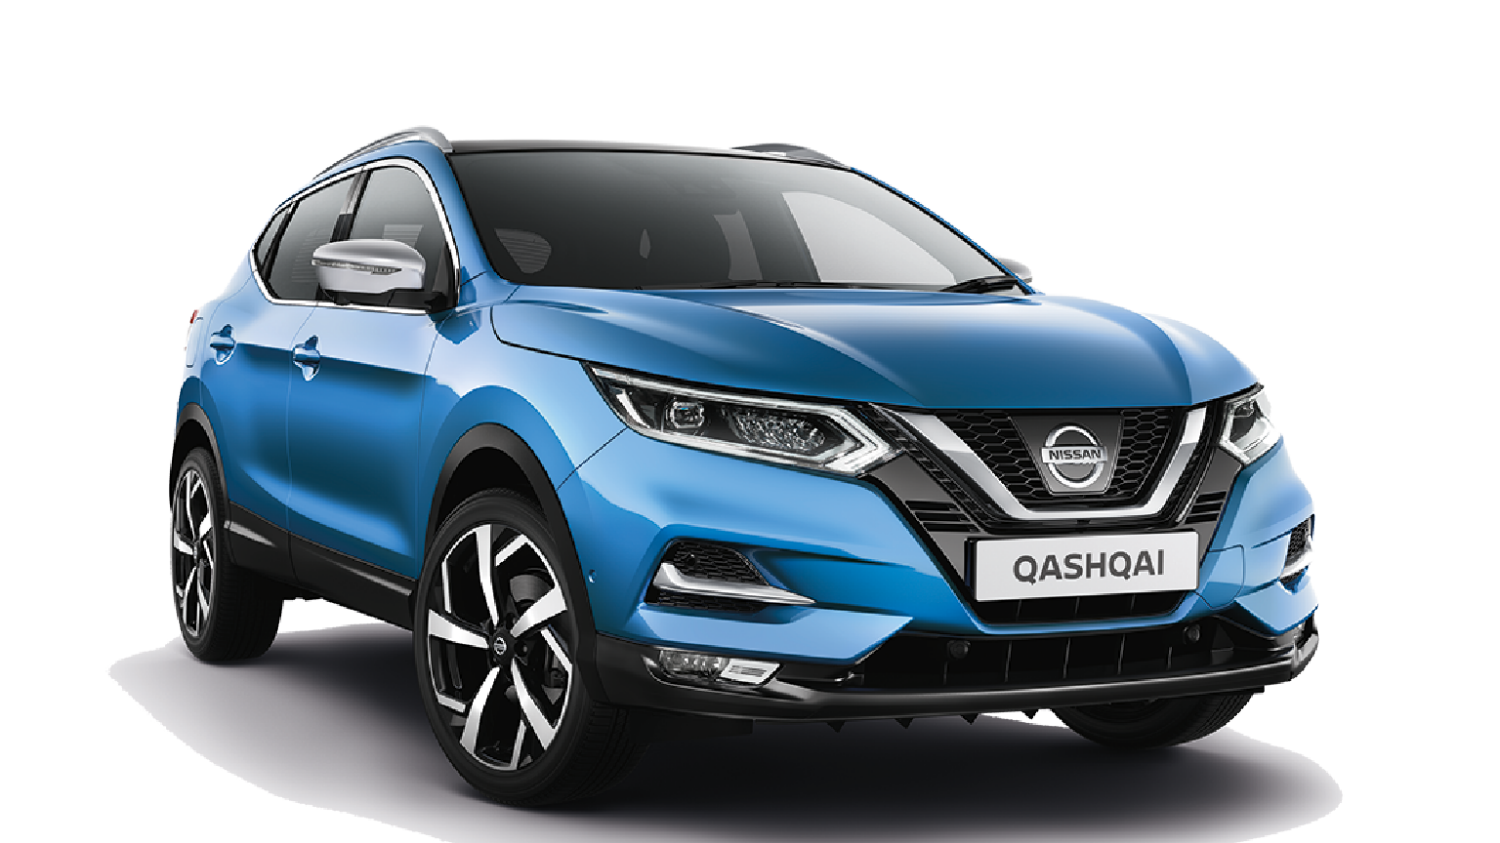 Nissan Singapore | Innovation that excites on india cars, paris cars, siam cars, britain cars, france cars, bhutan cars, tonga cars, london cars, sofia cars, subic bay cars, dubai cars, dprk cars, brazil cars, u.s cars, new york cars, senegal cars, qatar cars, taipei cars, hong kong cars, italy cars,